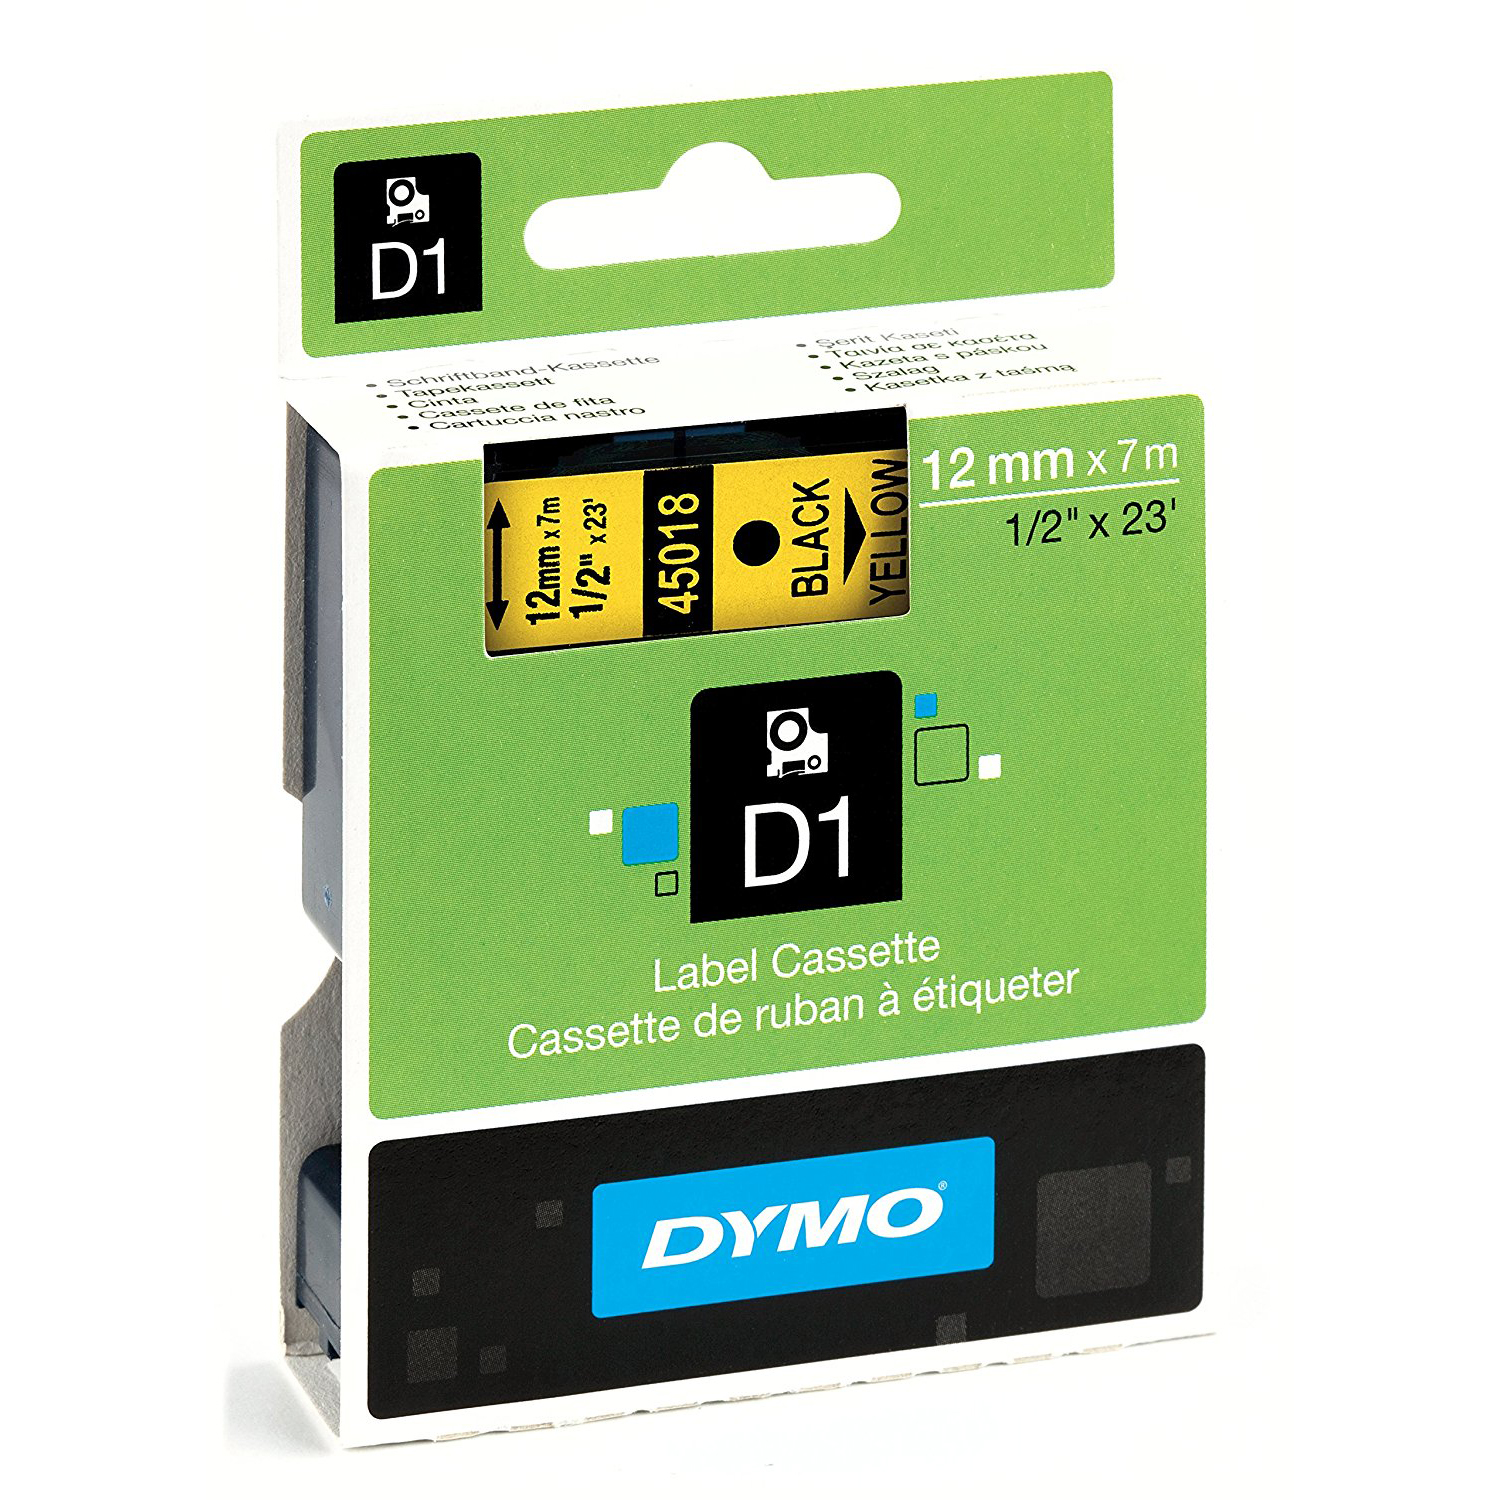 Dymo S0720580 (45018) D1 Standard Self-Adhesive Label Tape 12mm x 7m - Black on Yellow (pc)